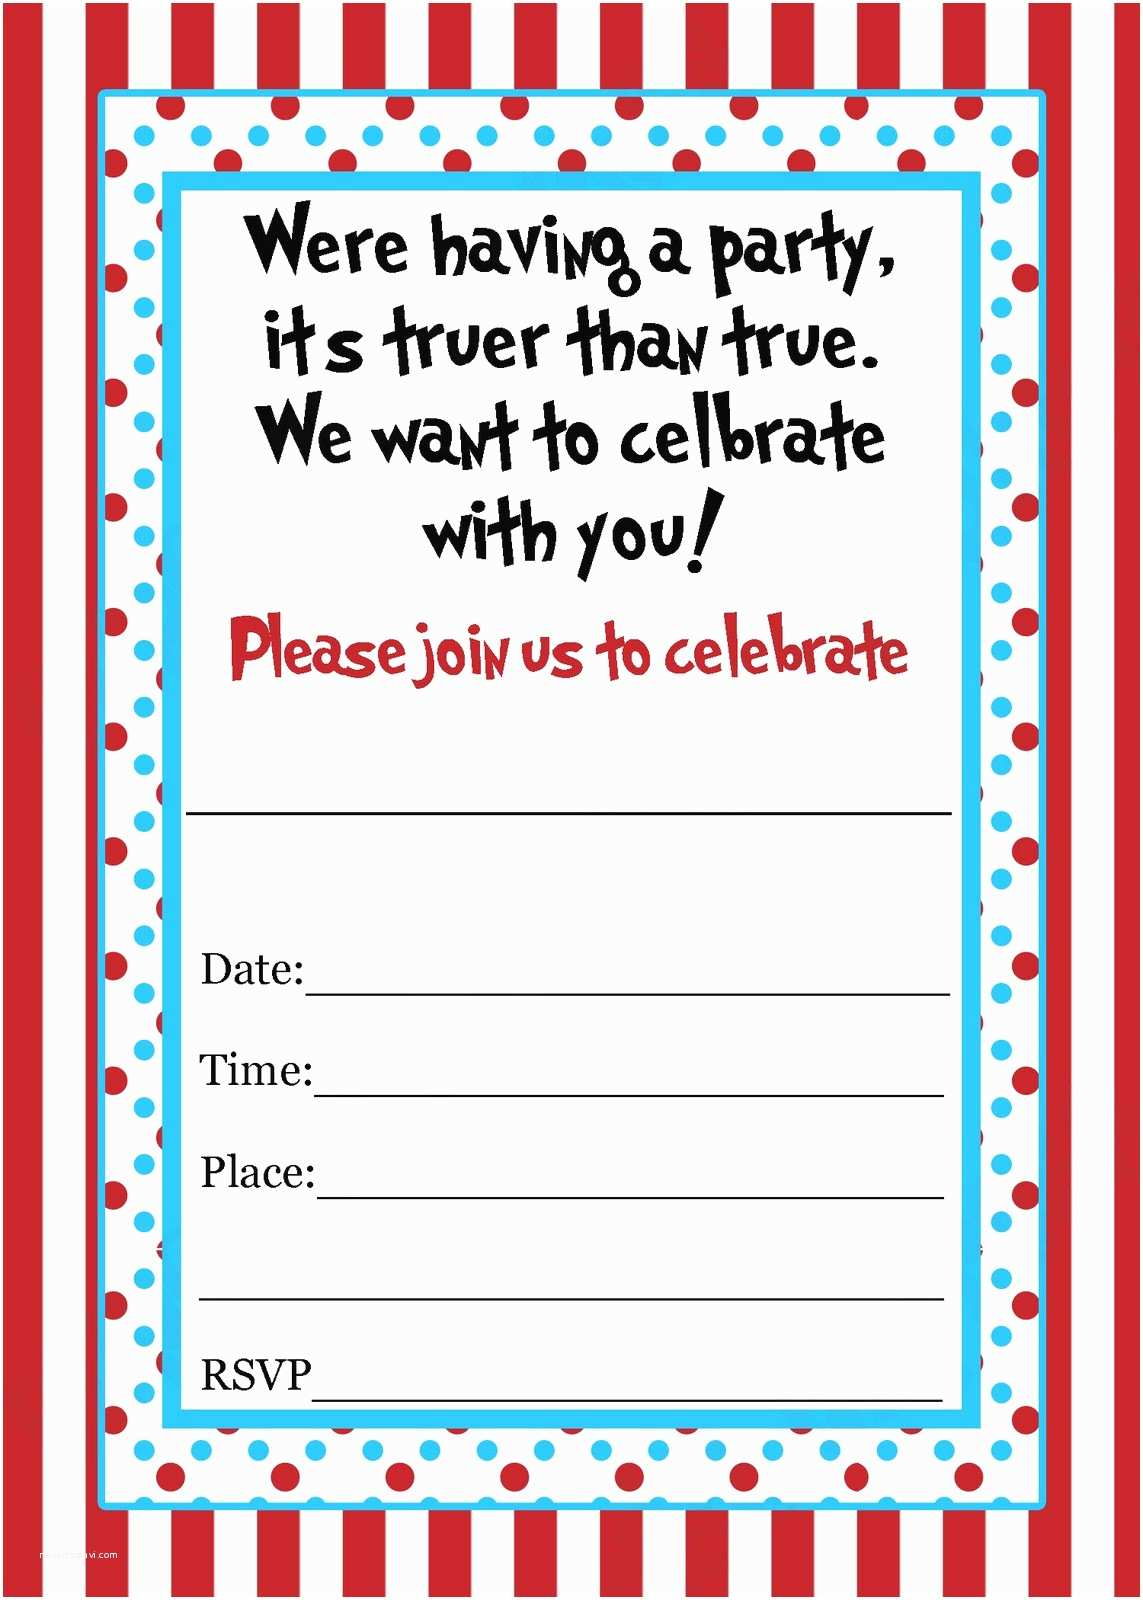 Blank Party Invitations Dr Seuss Templates Search Results